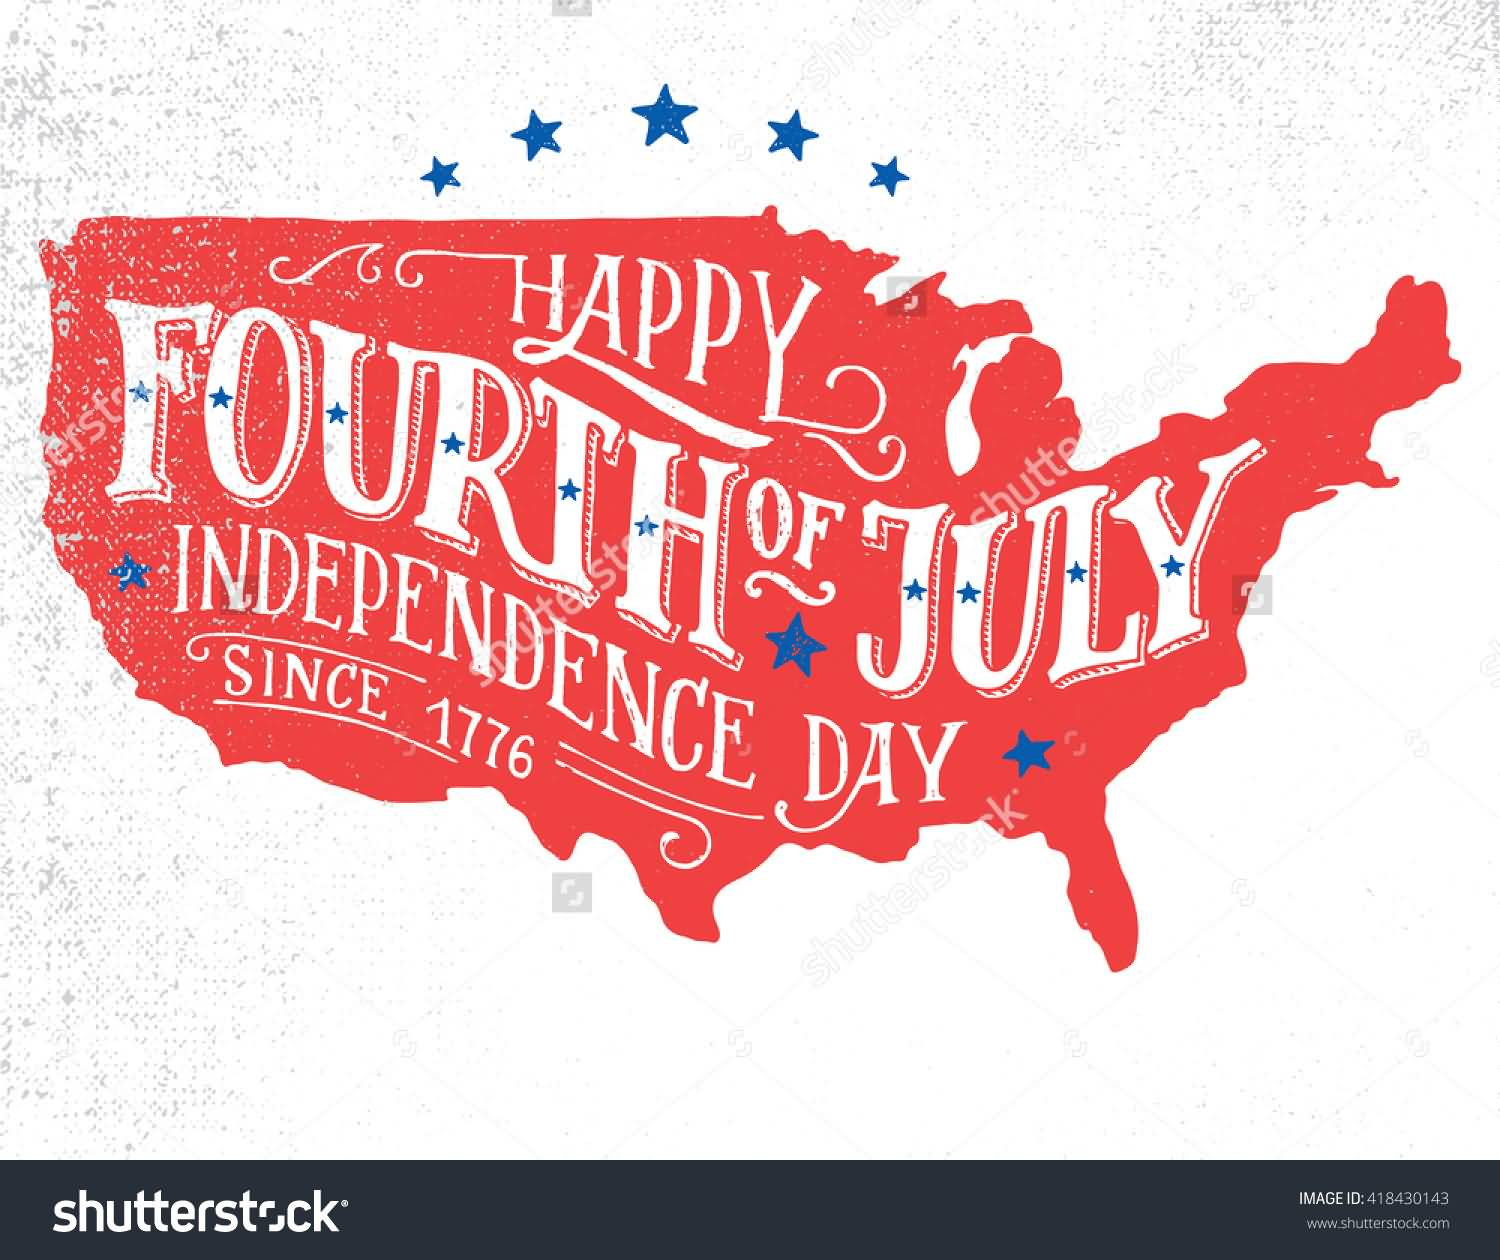 Happy Fourth Of July and Happy Independence Day